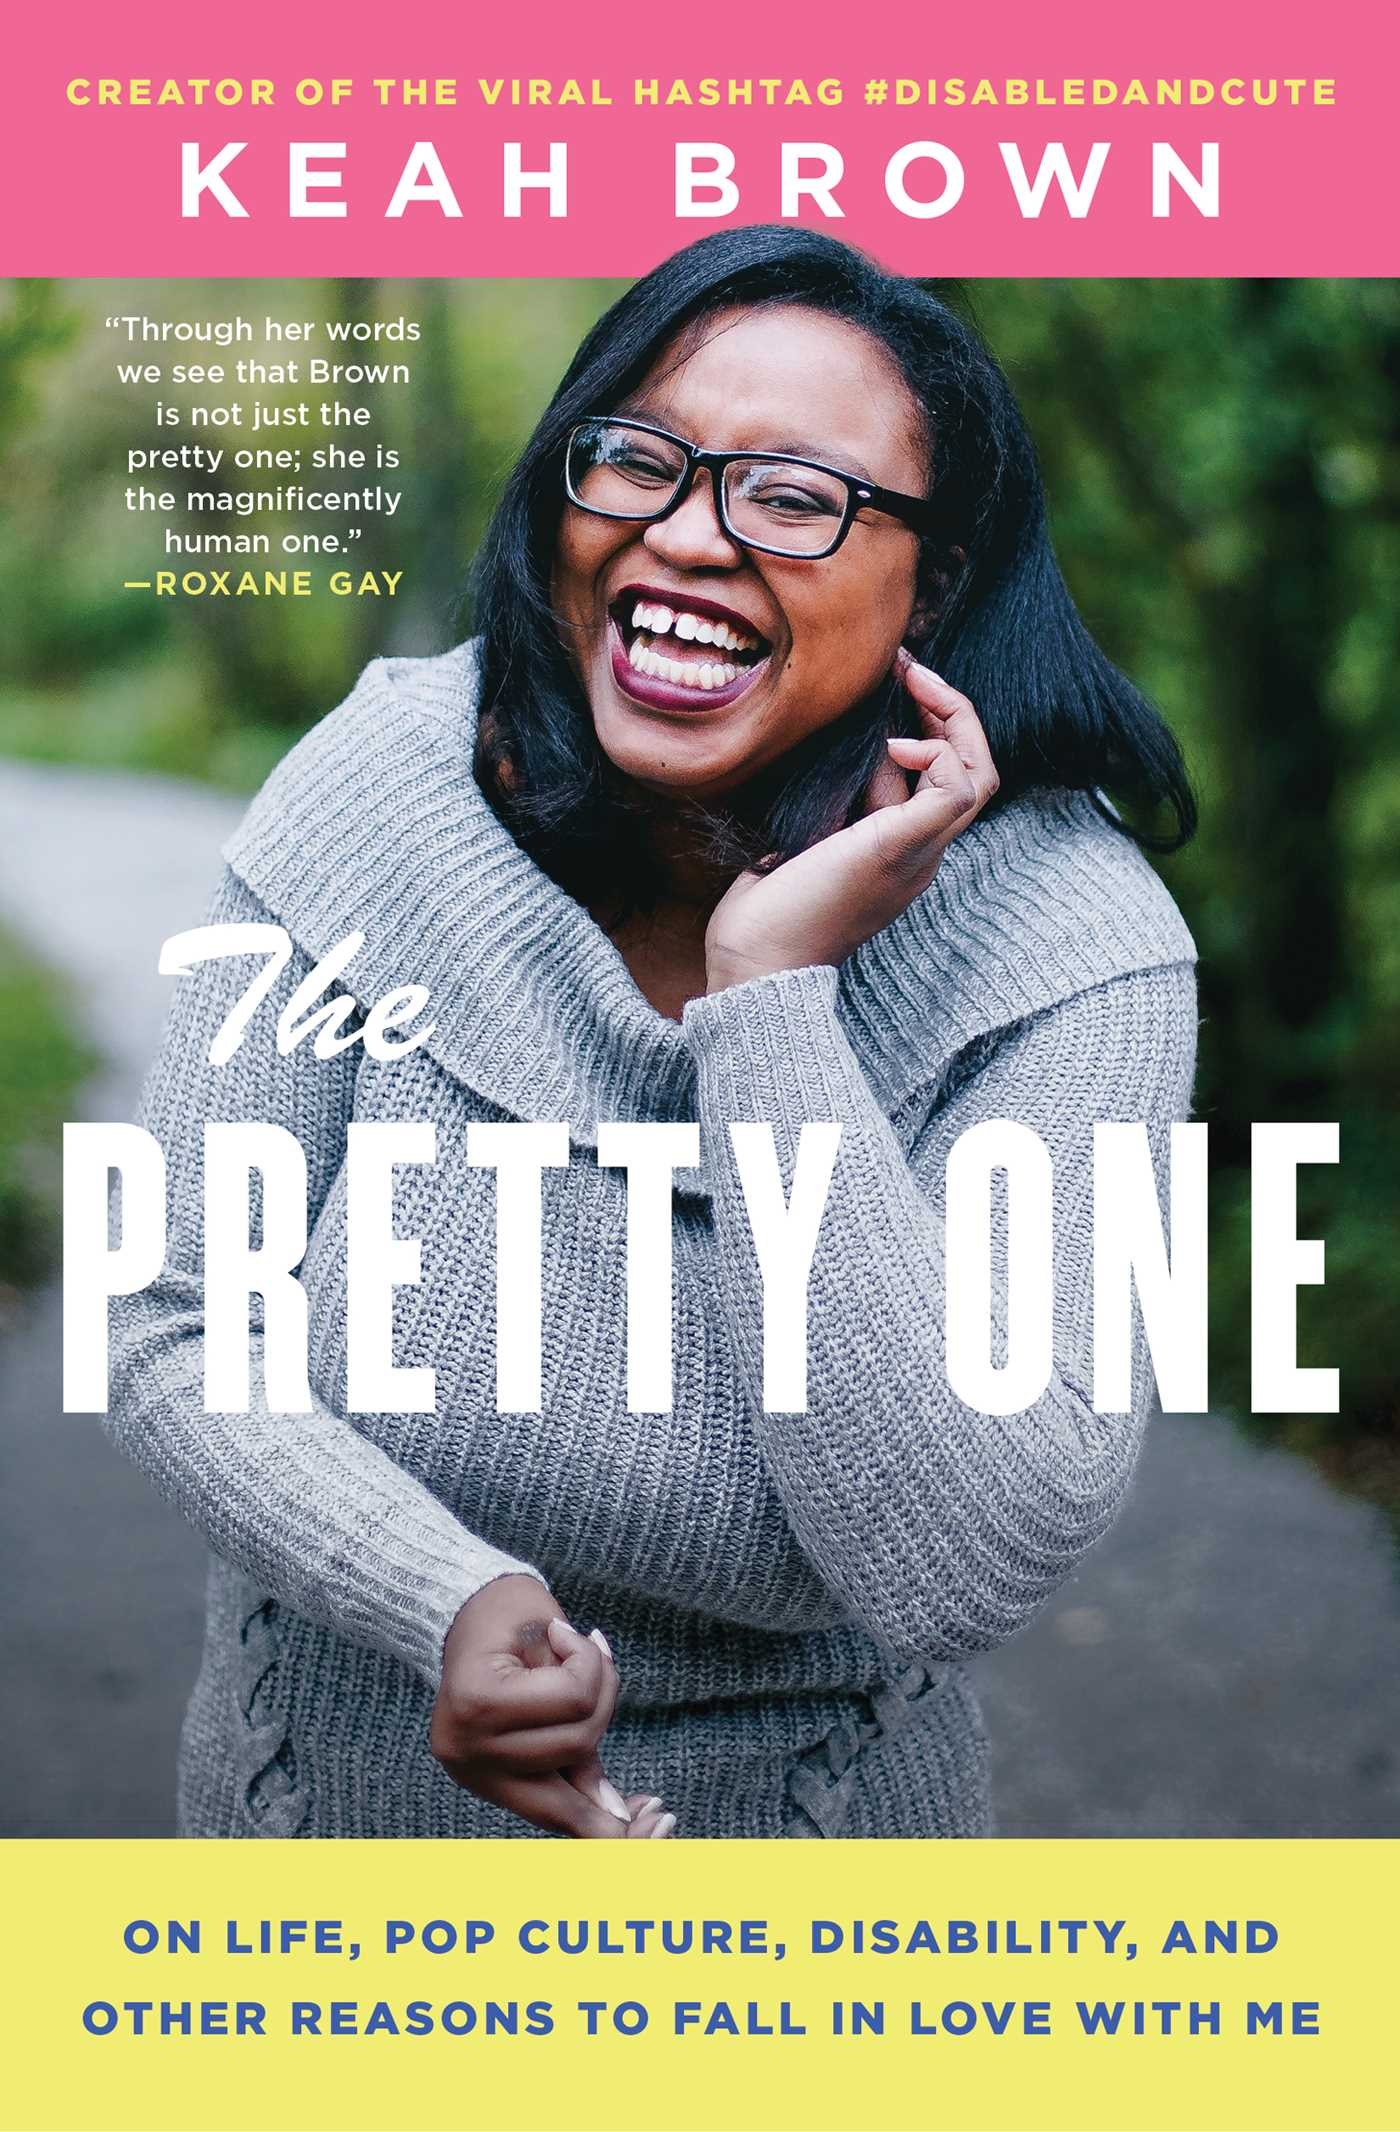 The Pretty One: On Life, Pop Culture, Disability, and Other Reasons to Fall in Love With Me by Keah Brown